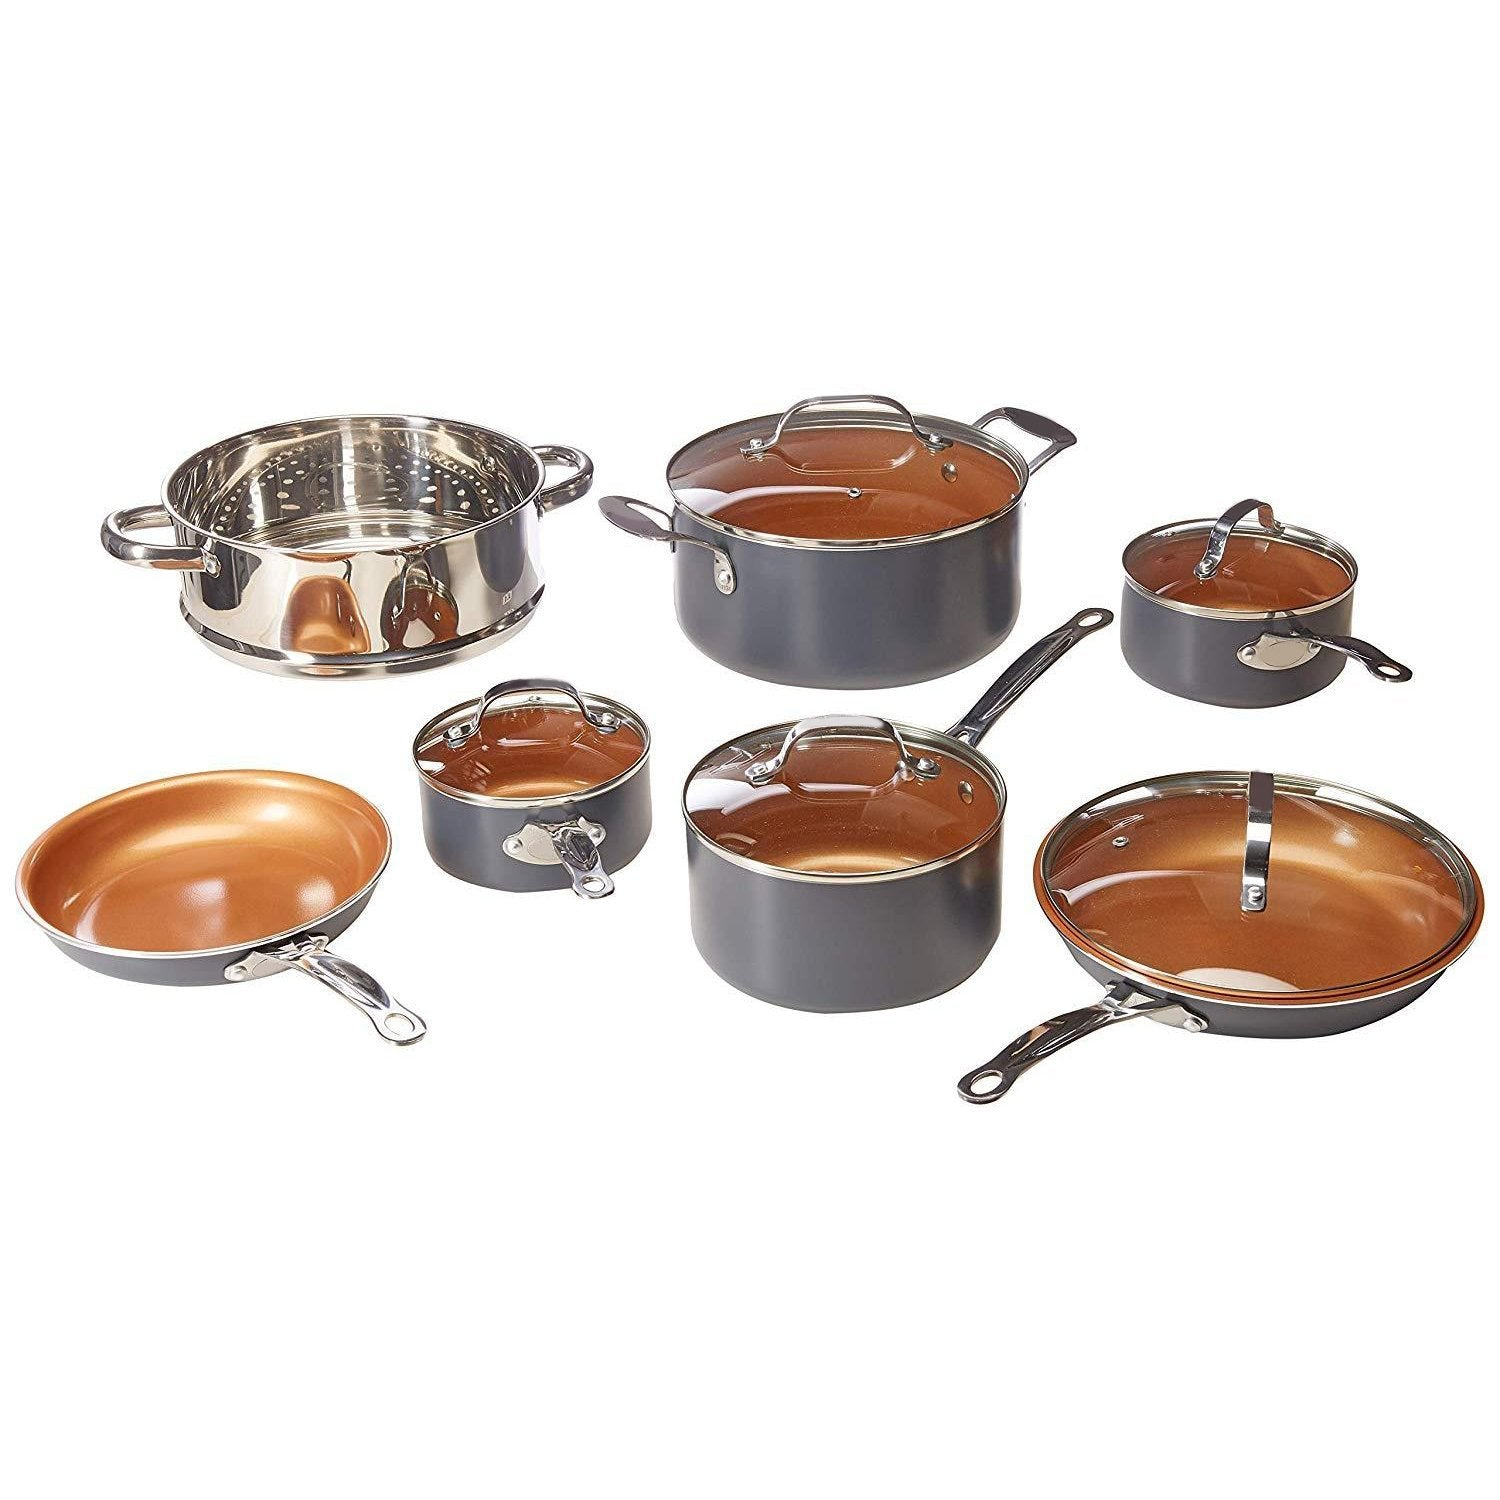 12 Piece Copper Kitchen Set with Non-Stick Copper Coating